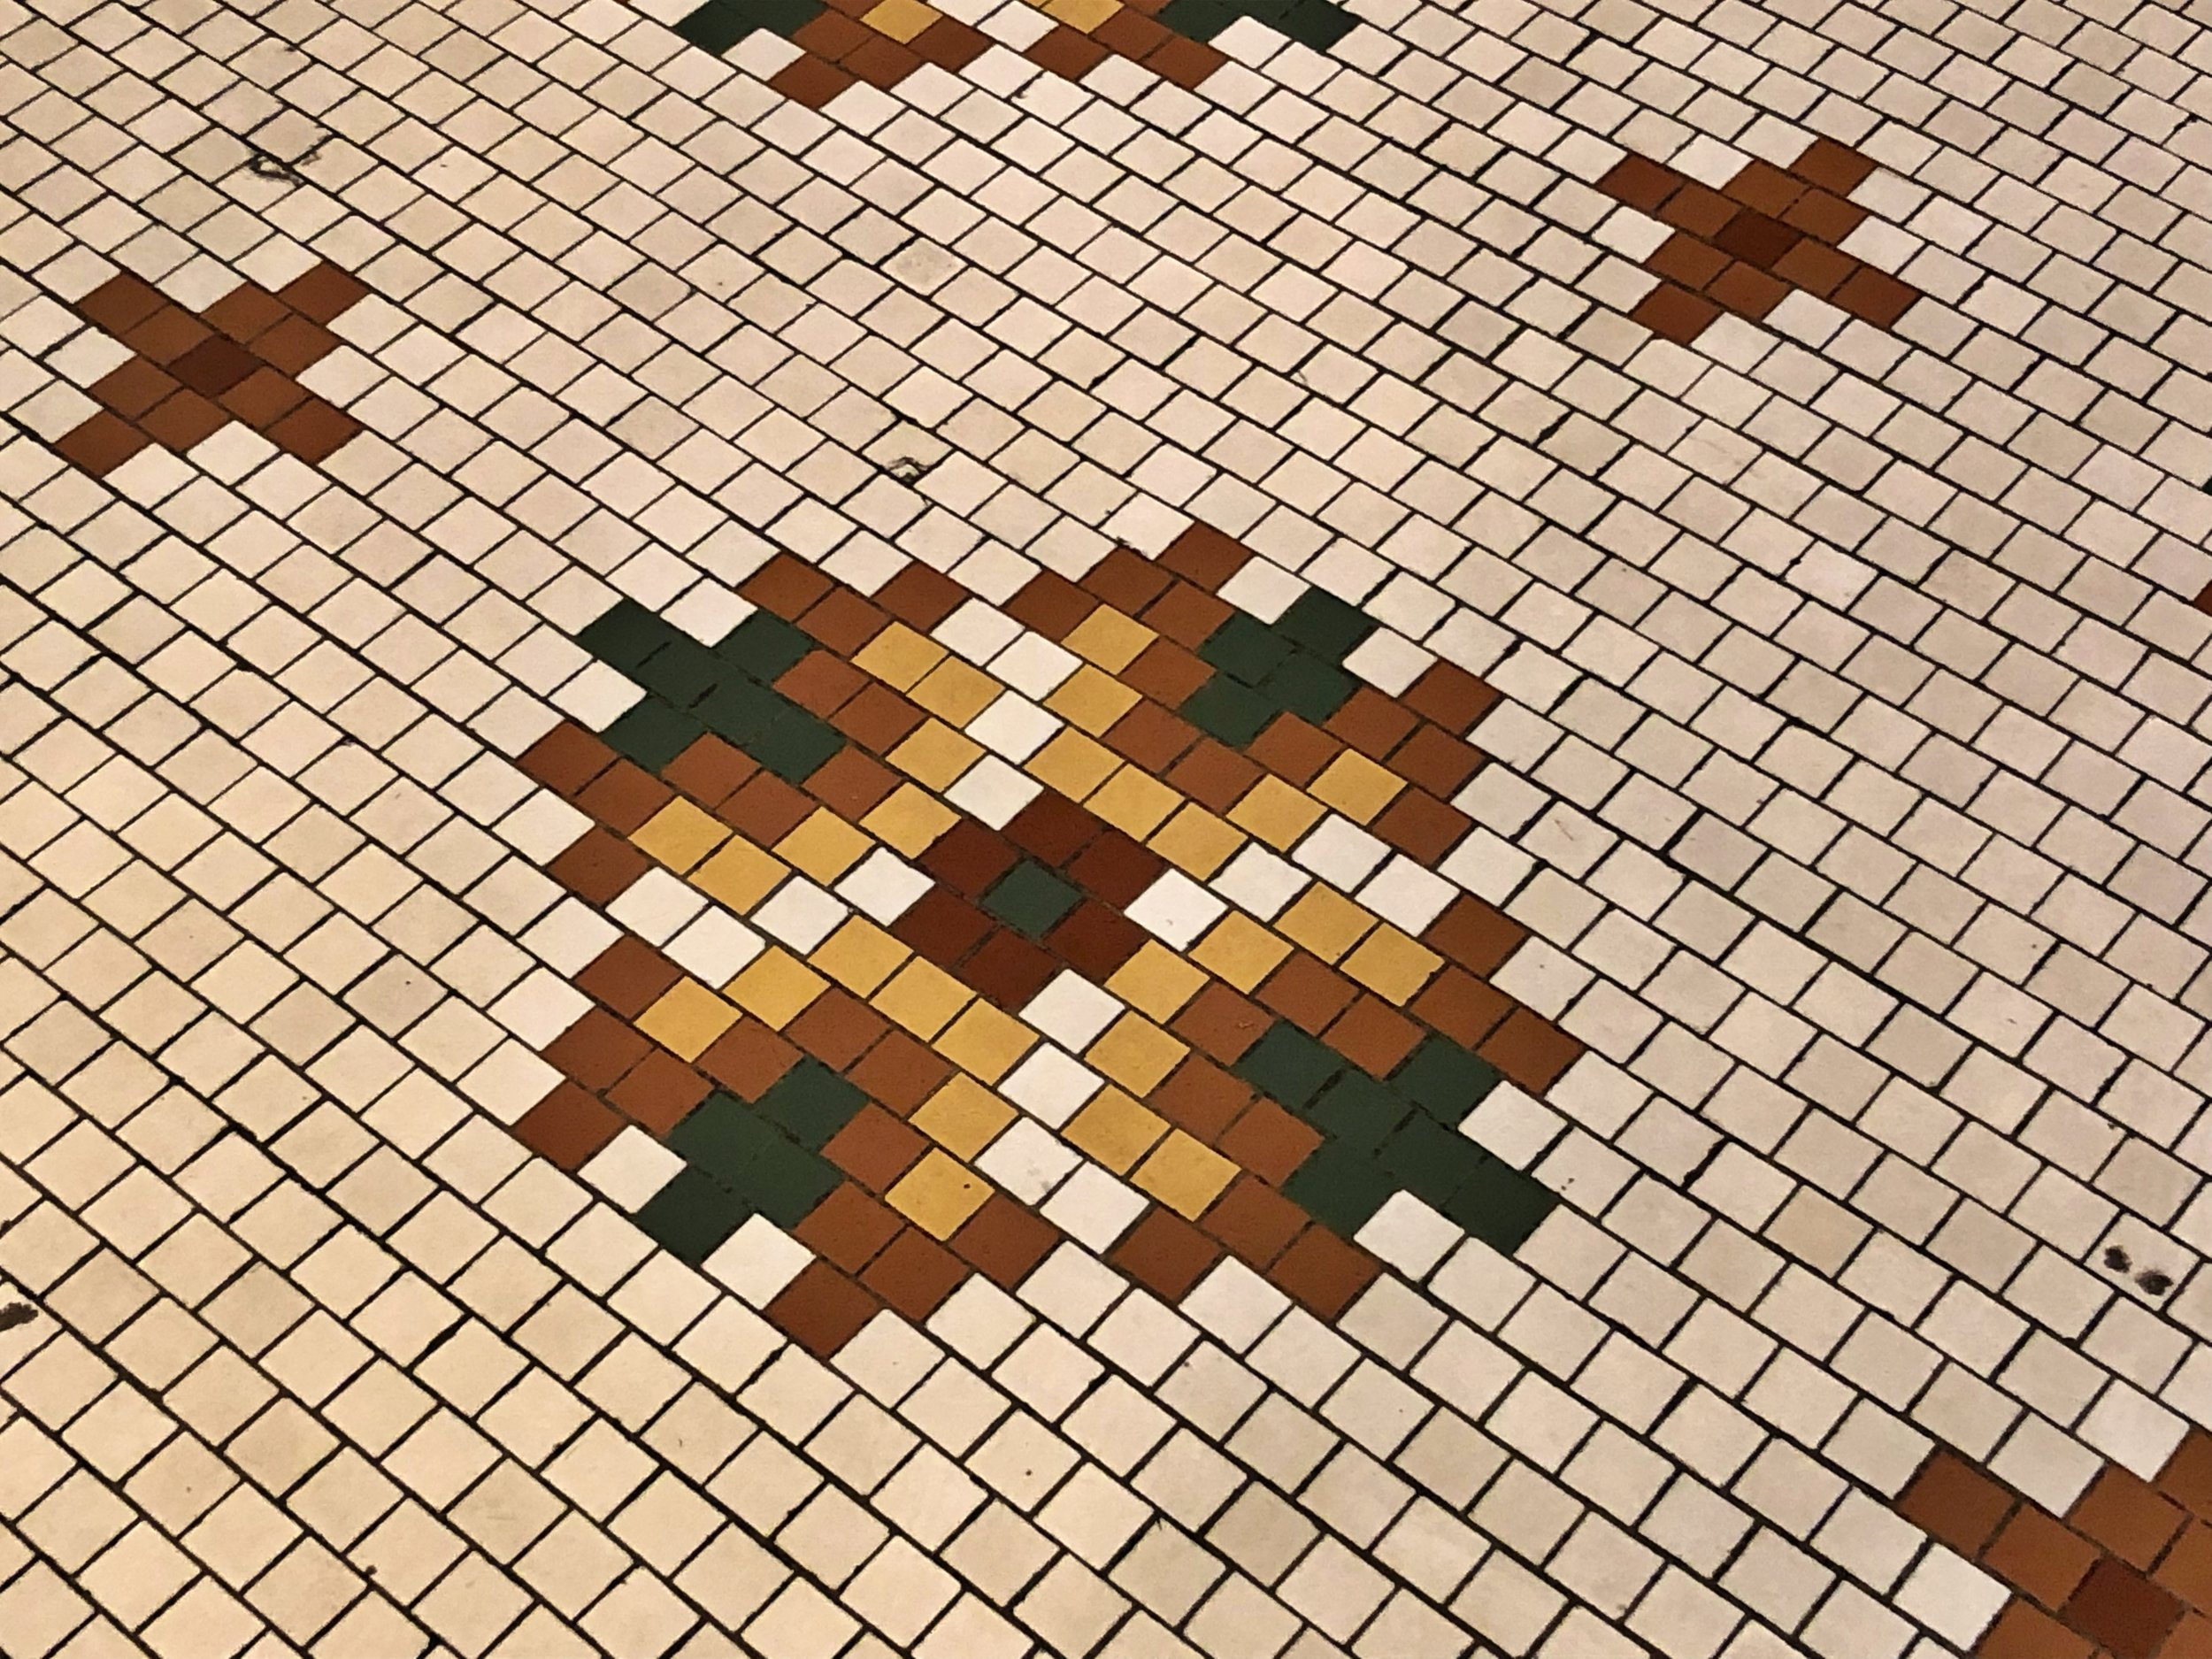 Original Italian tile floors throughout the museum